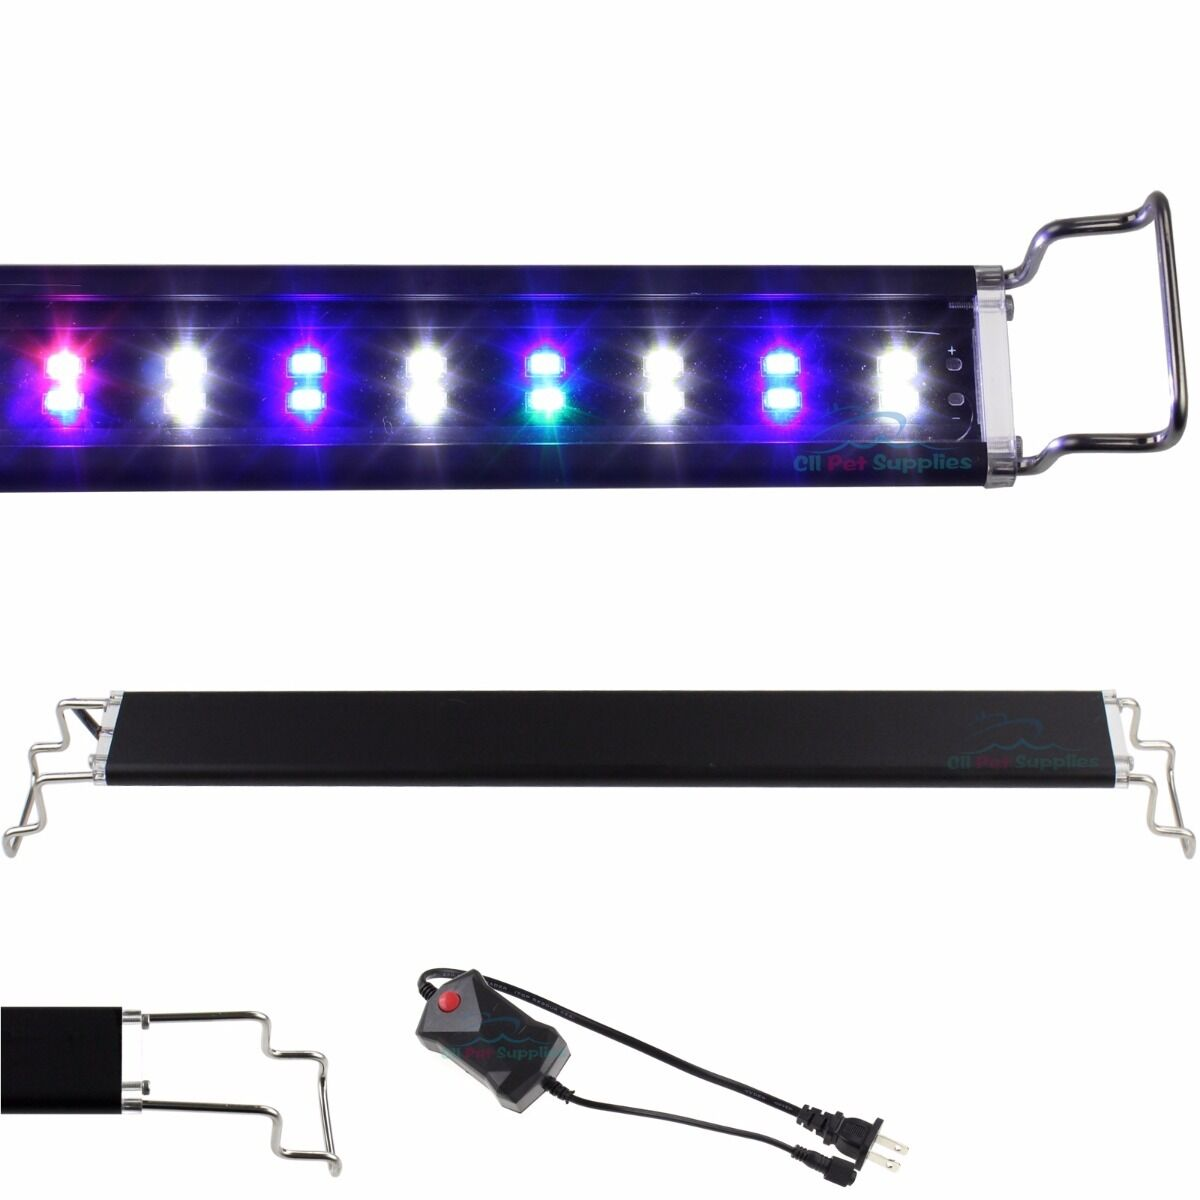 Купить AQUANEAT - 12-48 LED Light Aquarium Fish Tank 0.5W Full Spectrum Plant Marine FOWLR